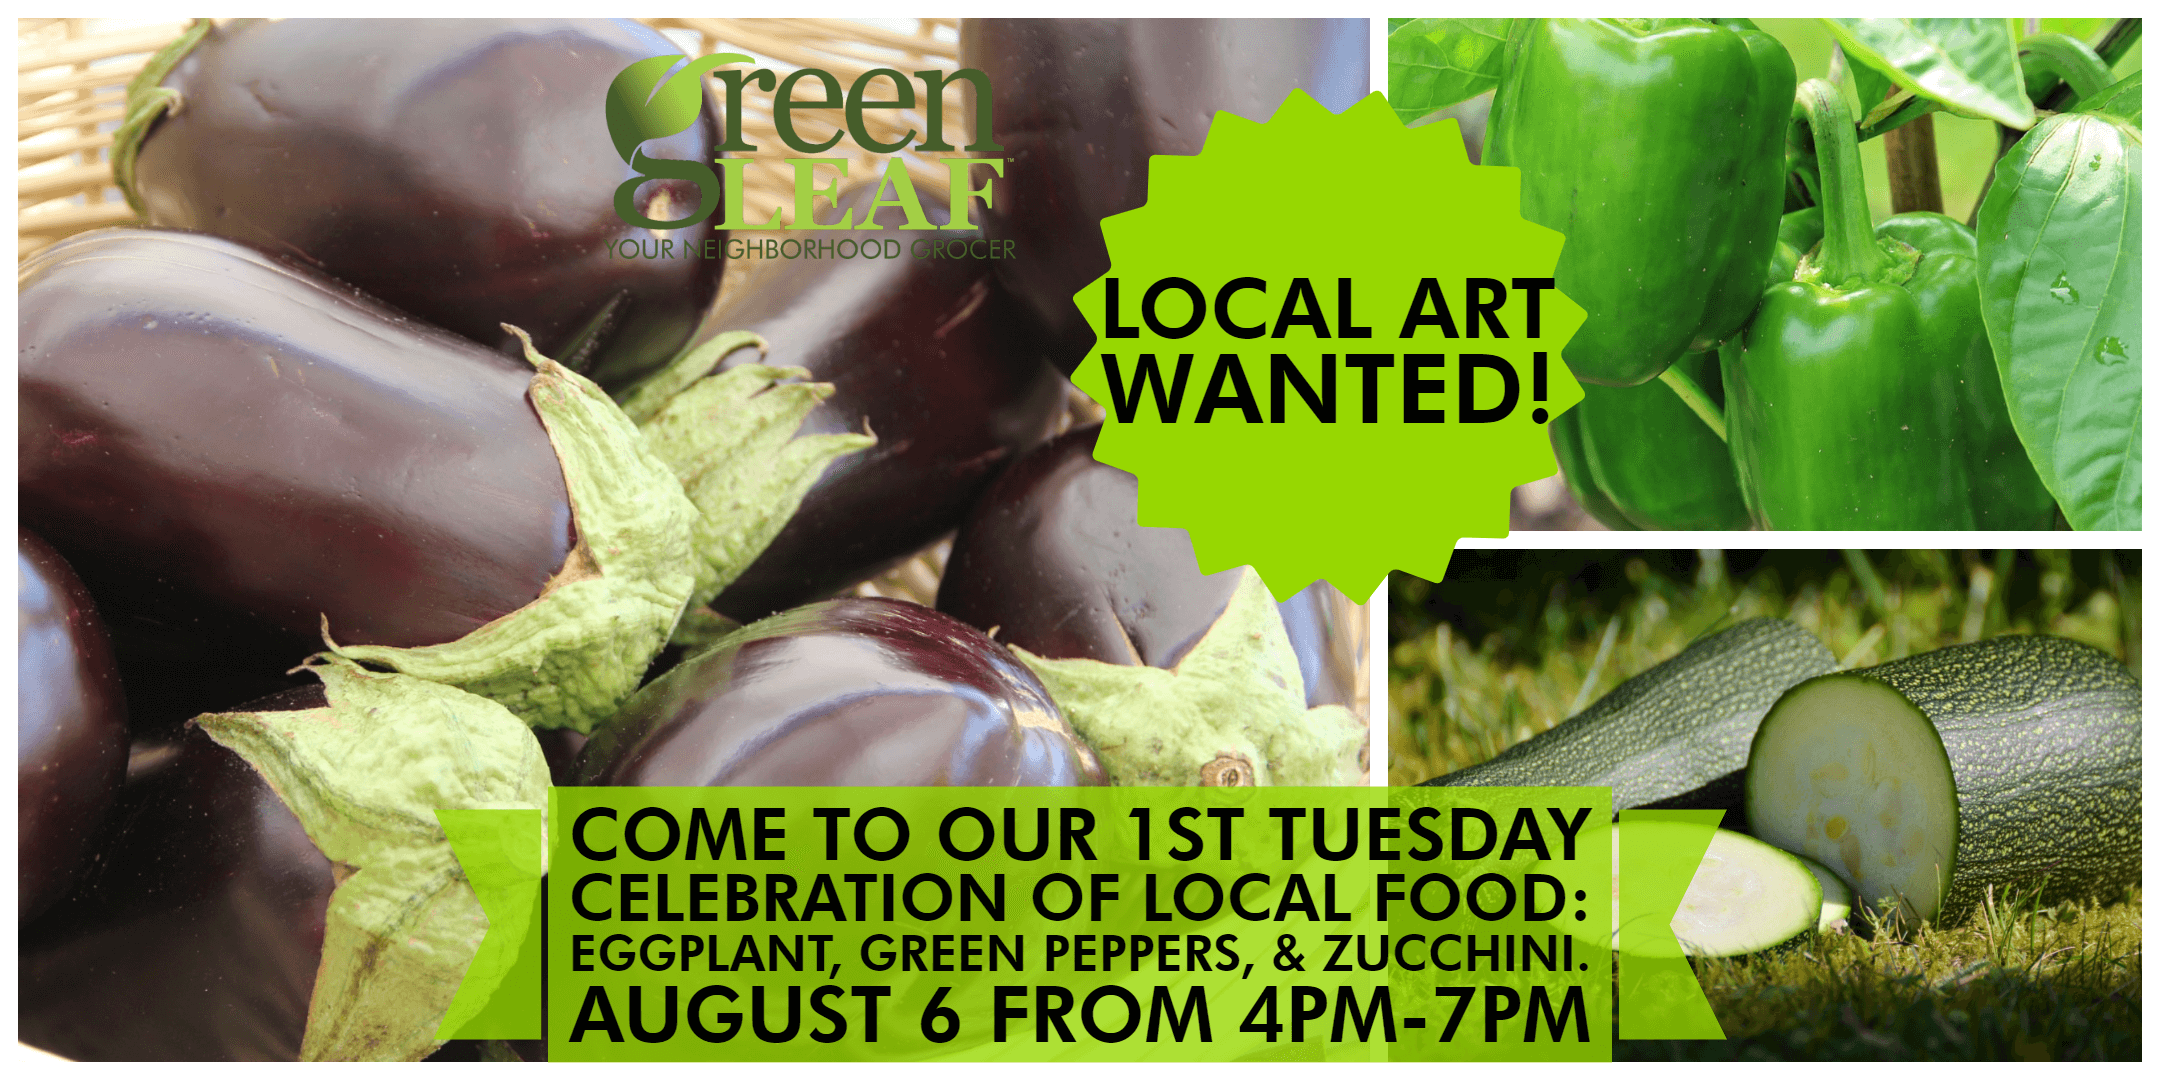 Local Art Wanted St. Louis GreenLeaf Market art and food show